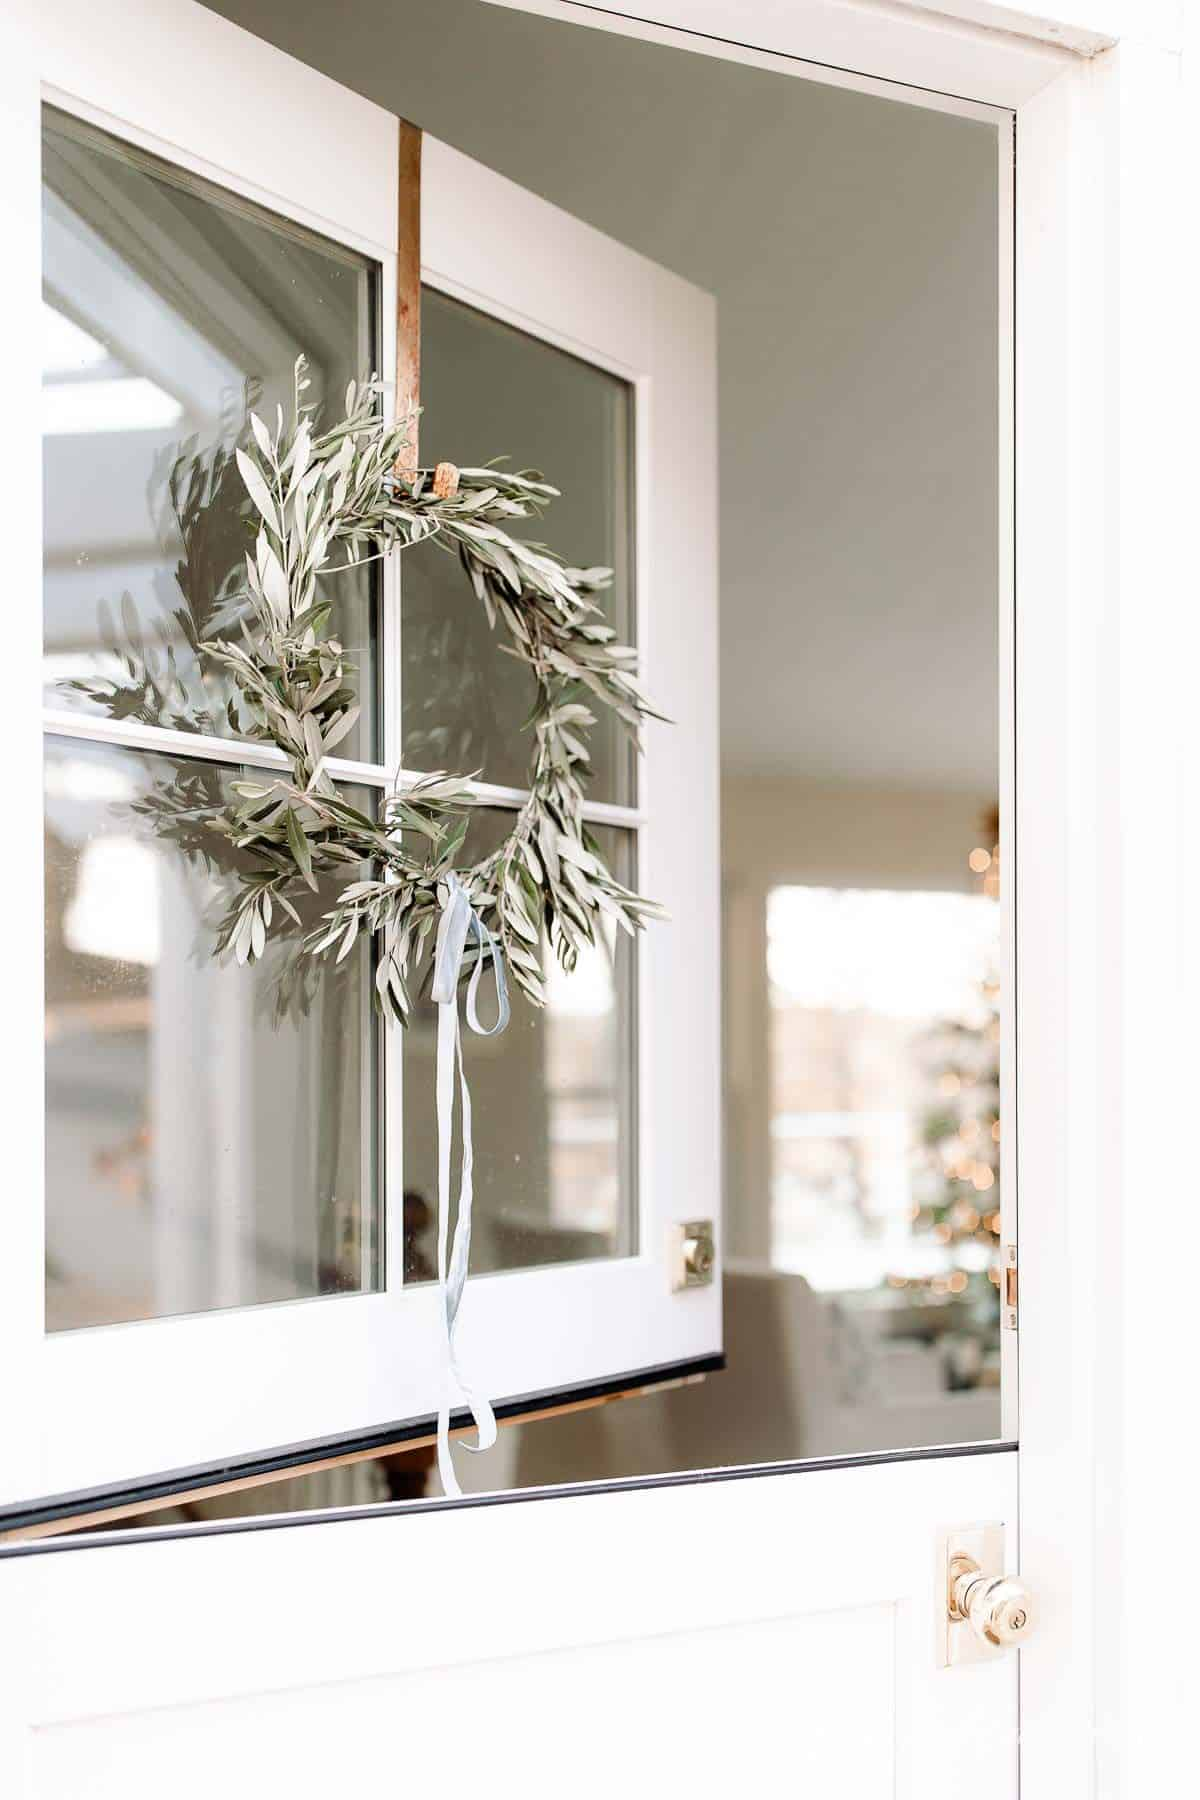 A dutch door with a DIY wreath hanging on the windows, looking into a living room decorated for Christmas.